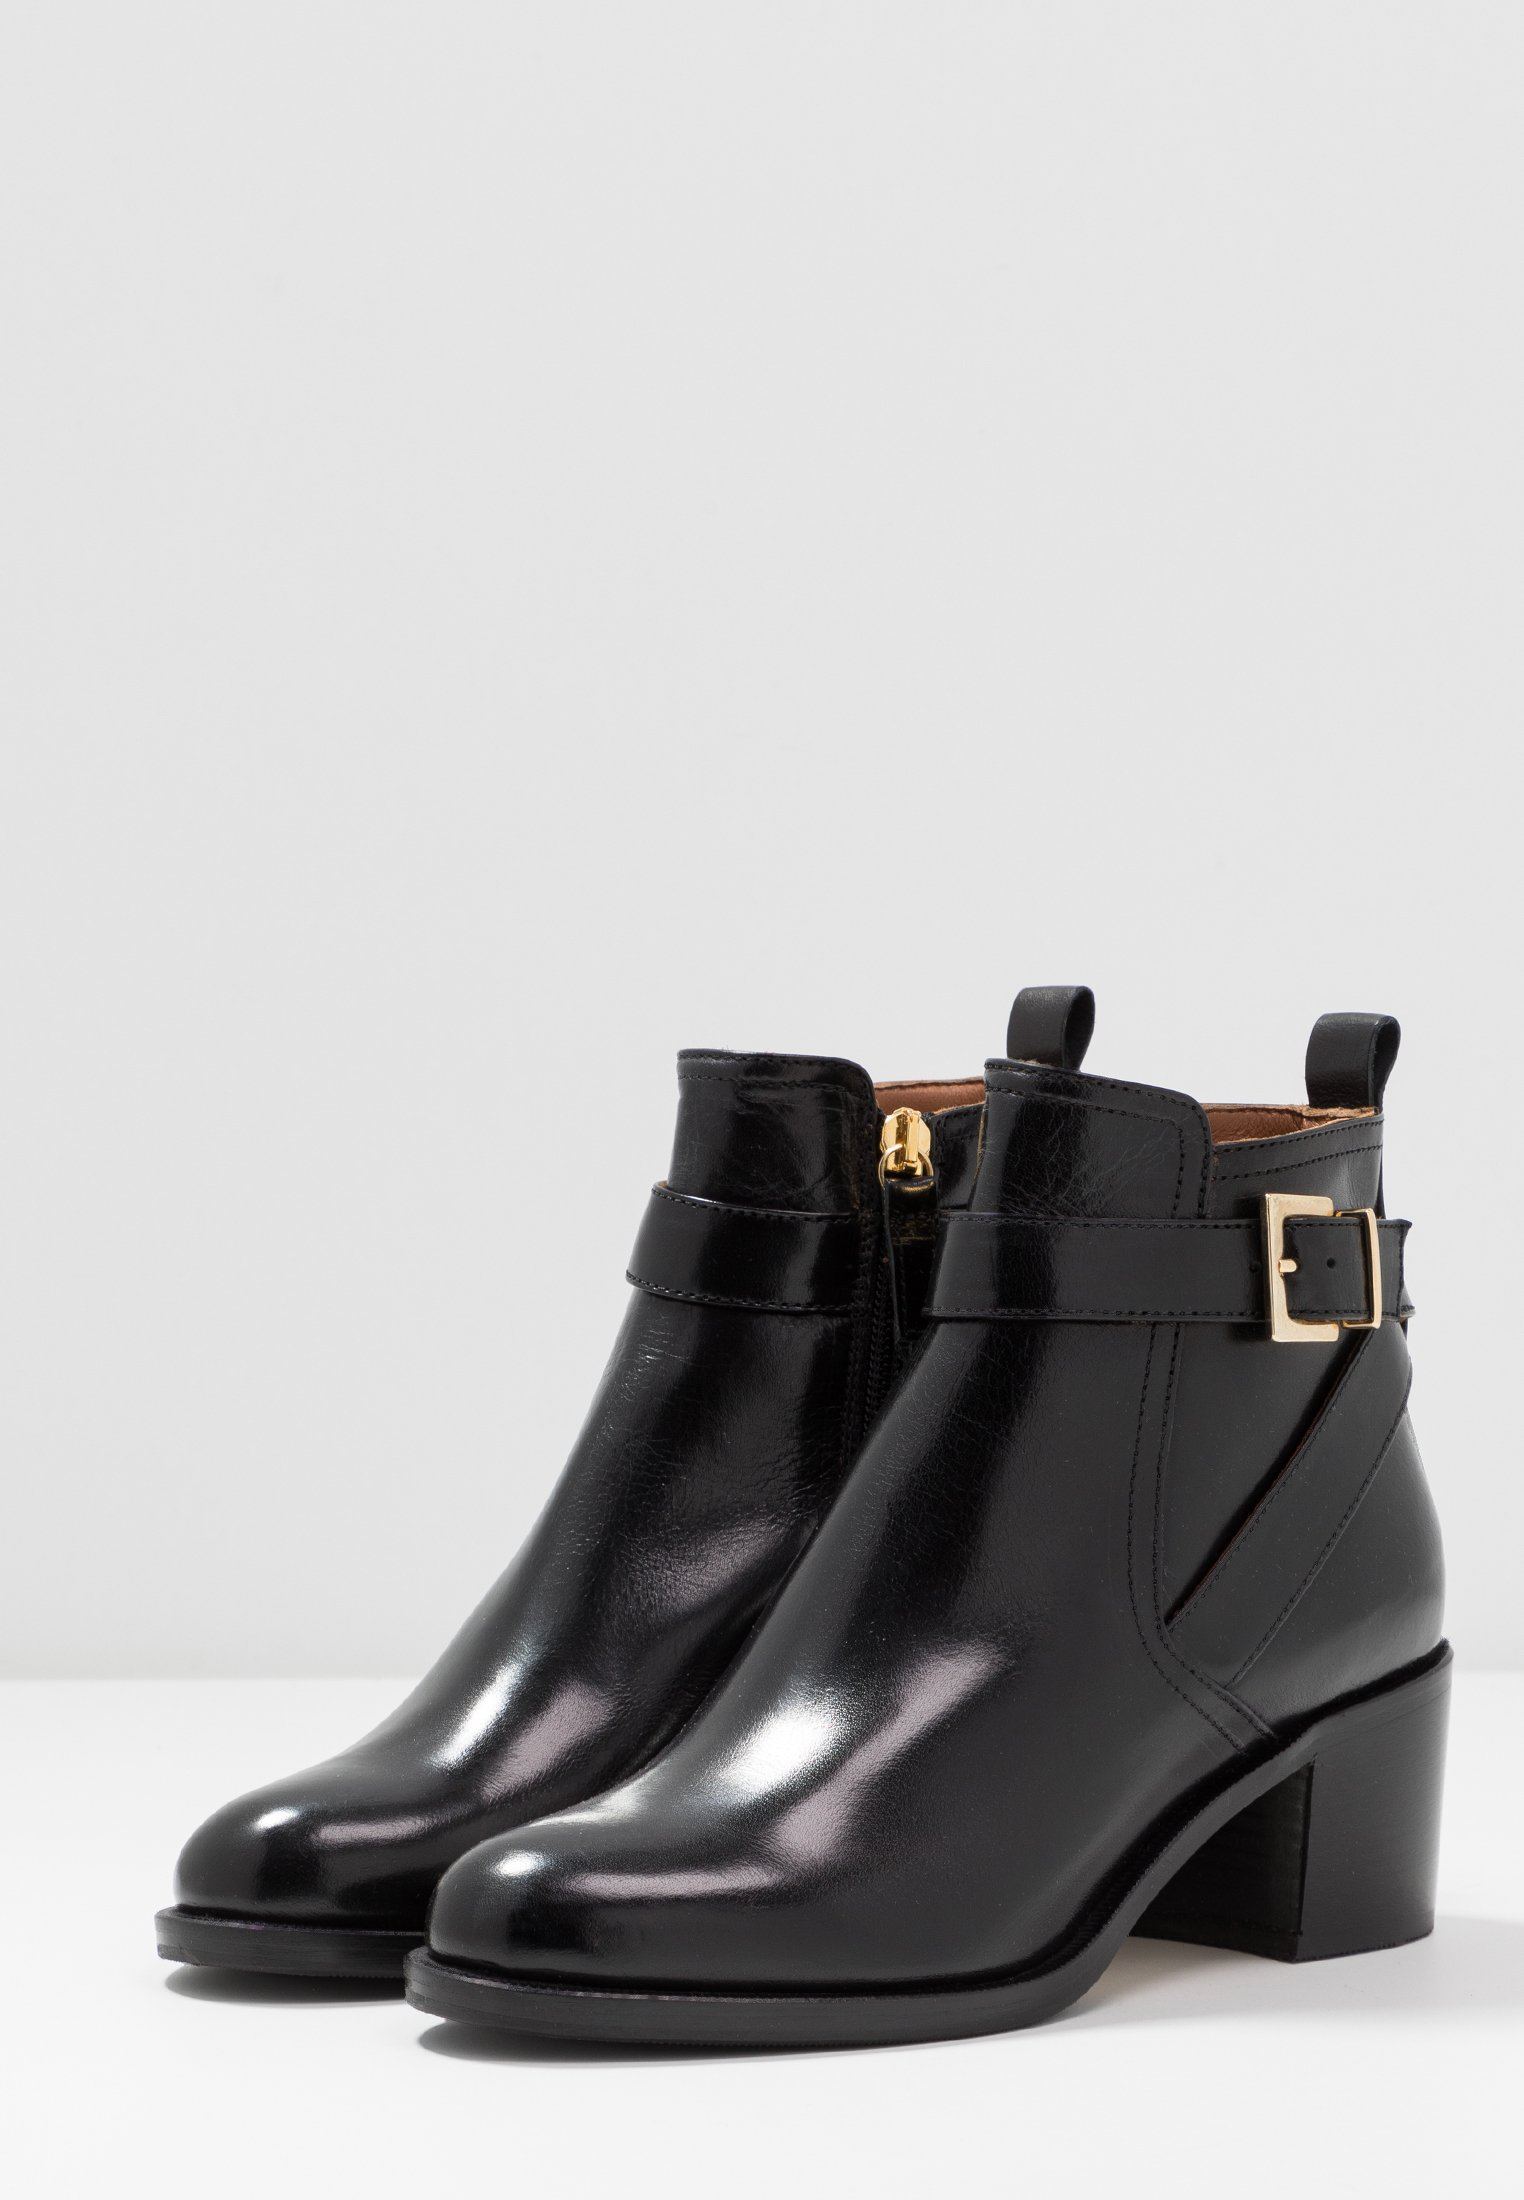 Hash#TAG Sustainable Ankle Boot - nero - Black Friday